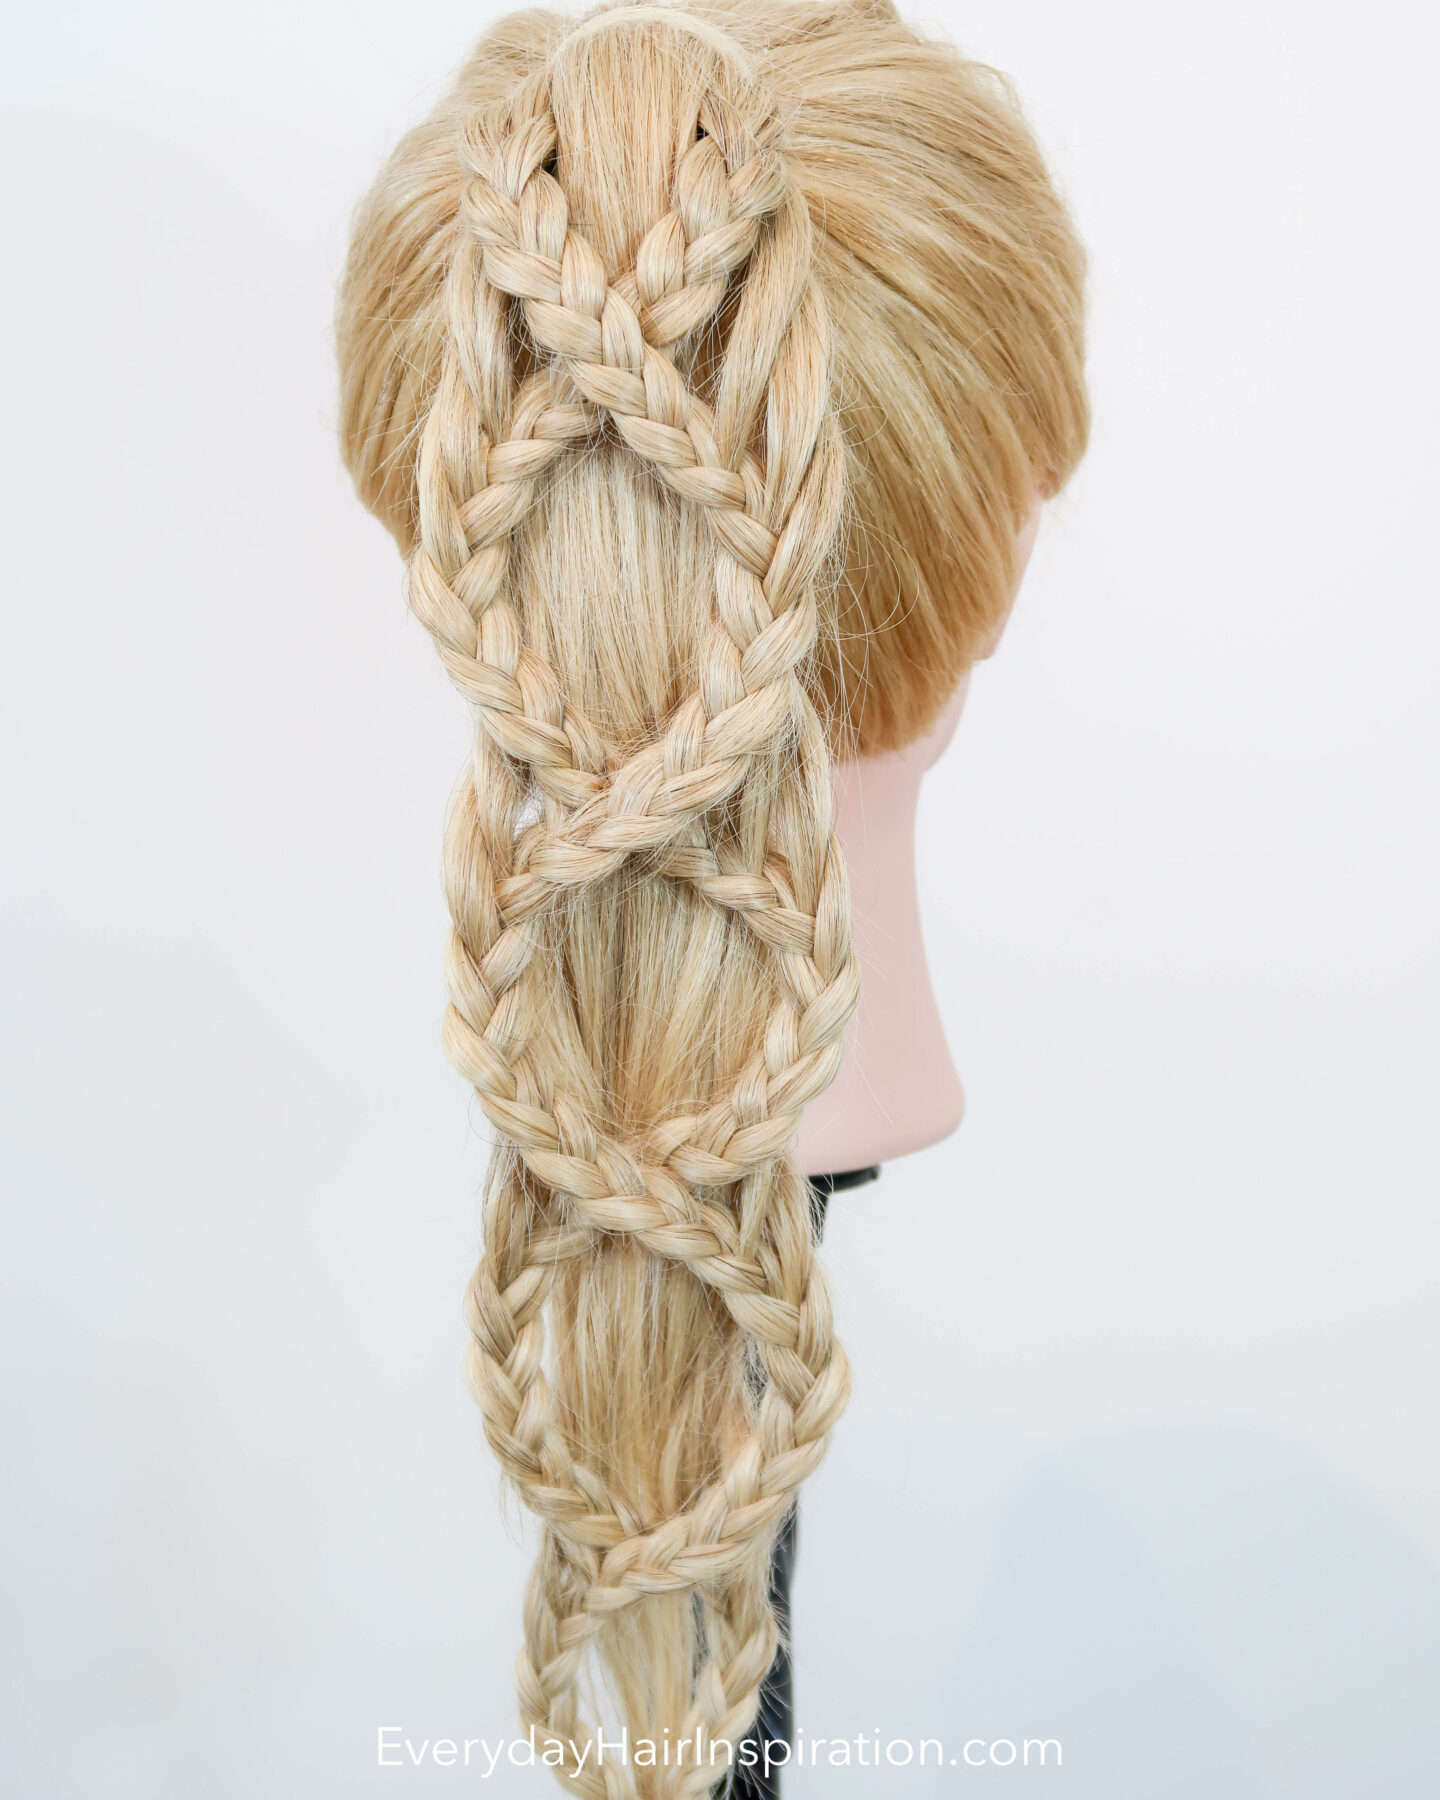 Blonde hair dresser doll seen dorm the back at an angle with a criss-cross braided ponytail.